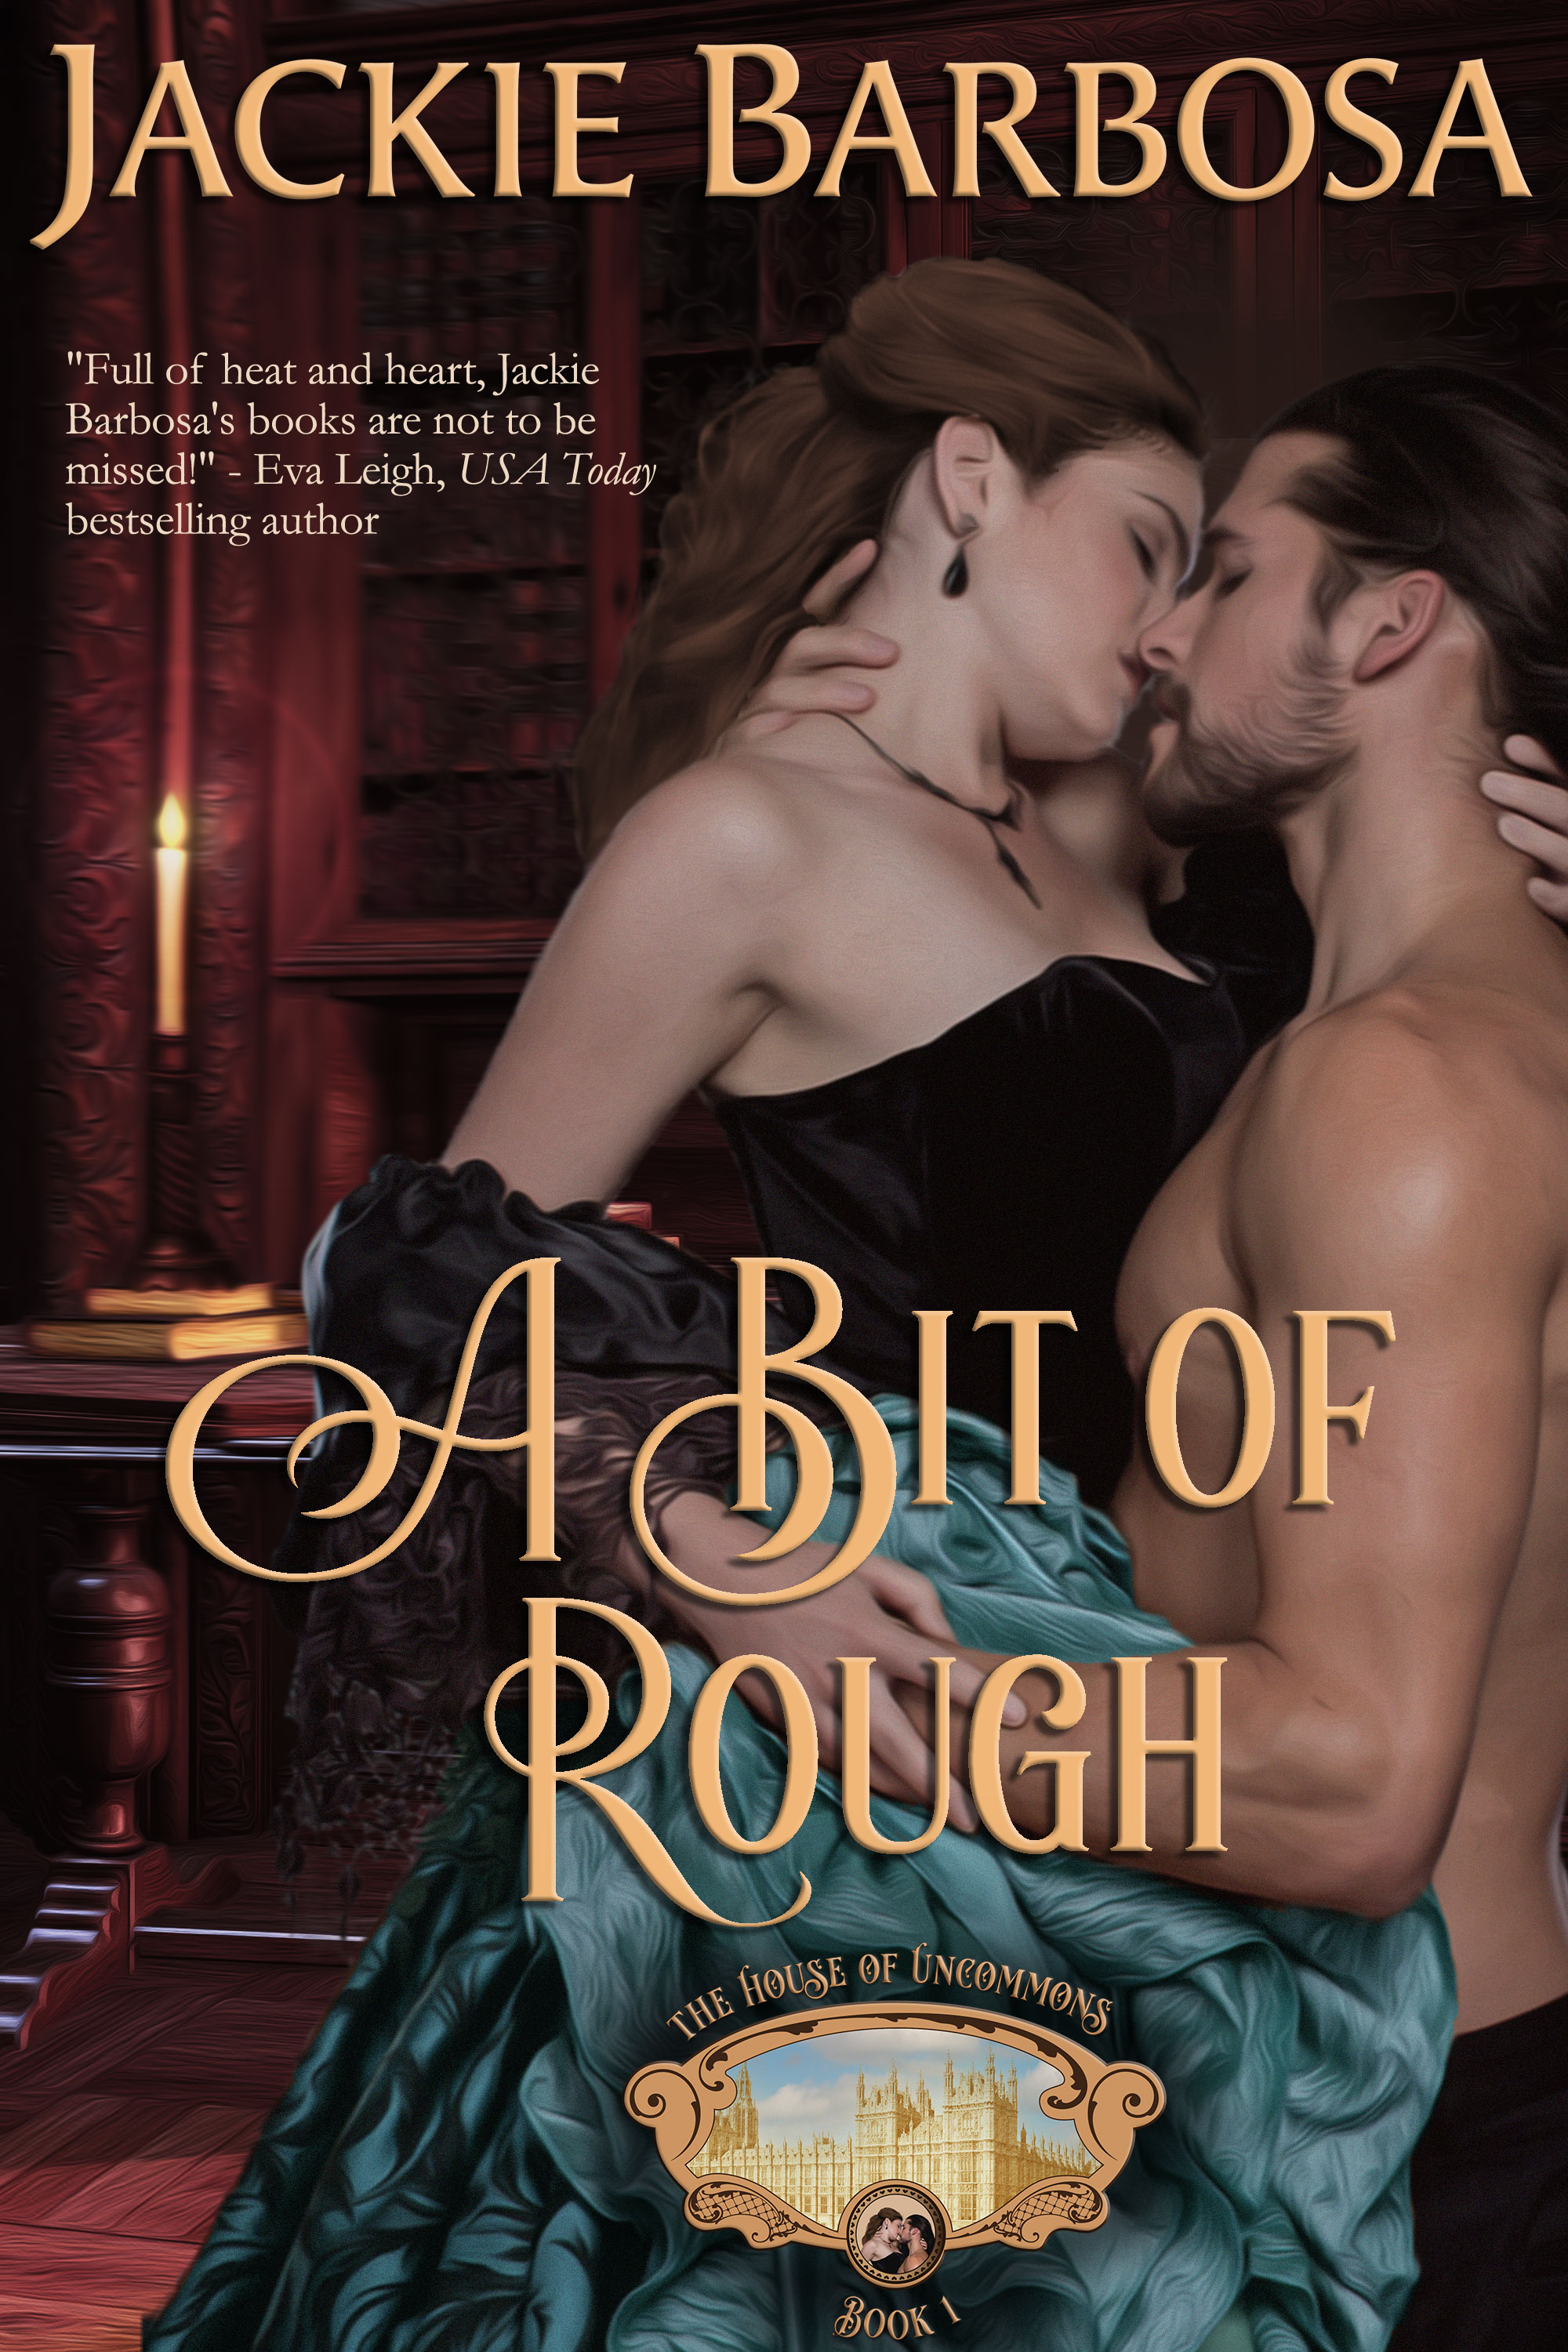 A Bit of Rough by Jackie Barbosa